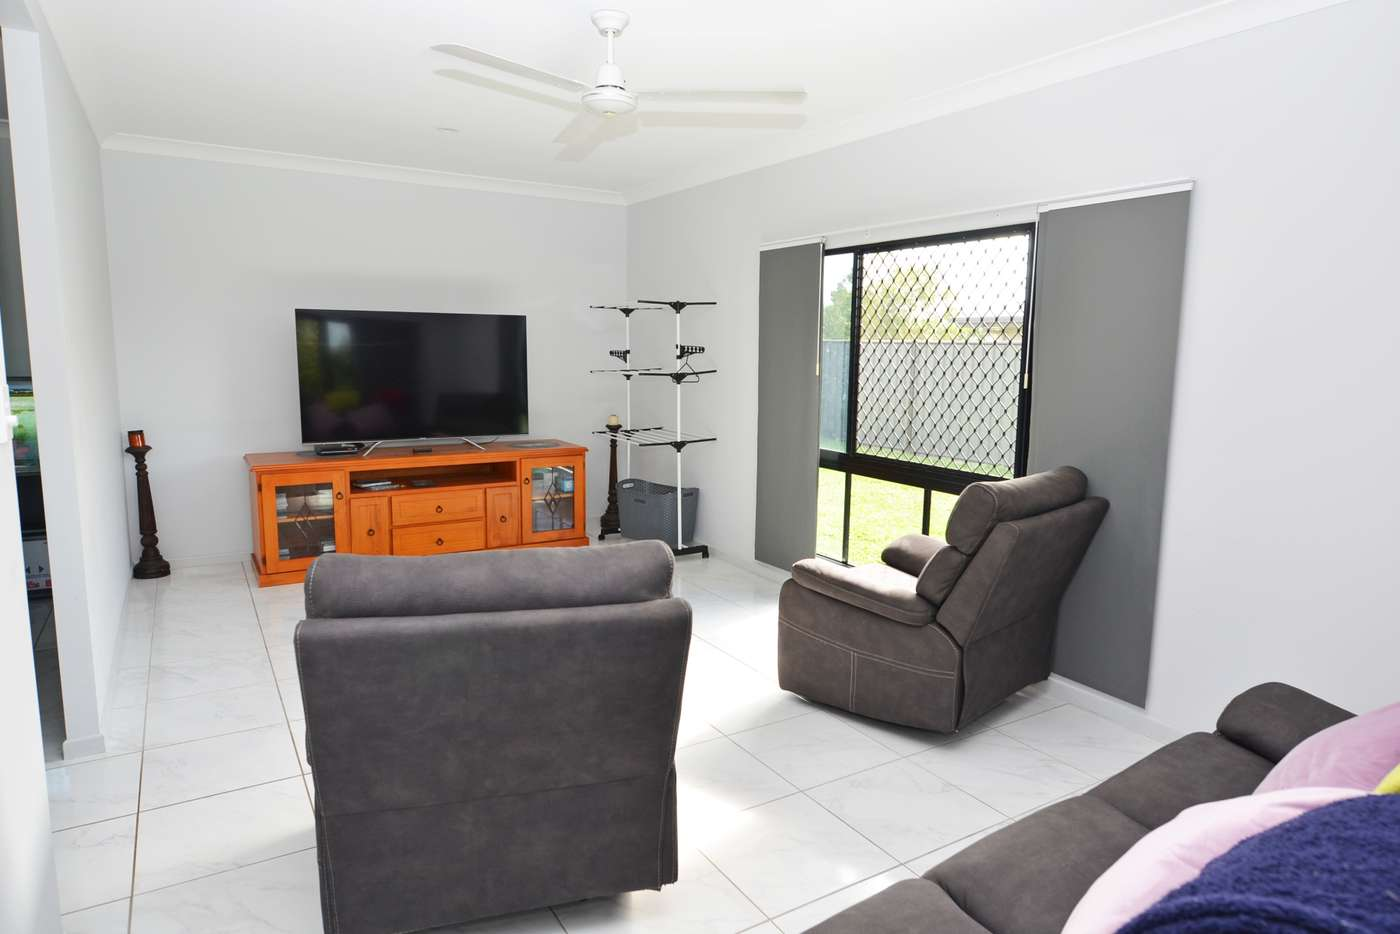 Sixth view of Homely house listing, 7 Sunbird Parade, Mareeba QLD 4880